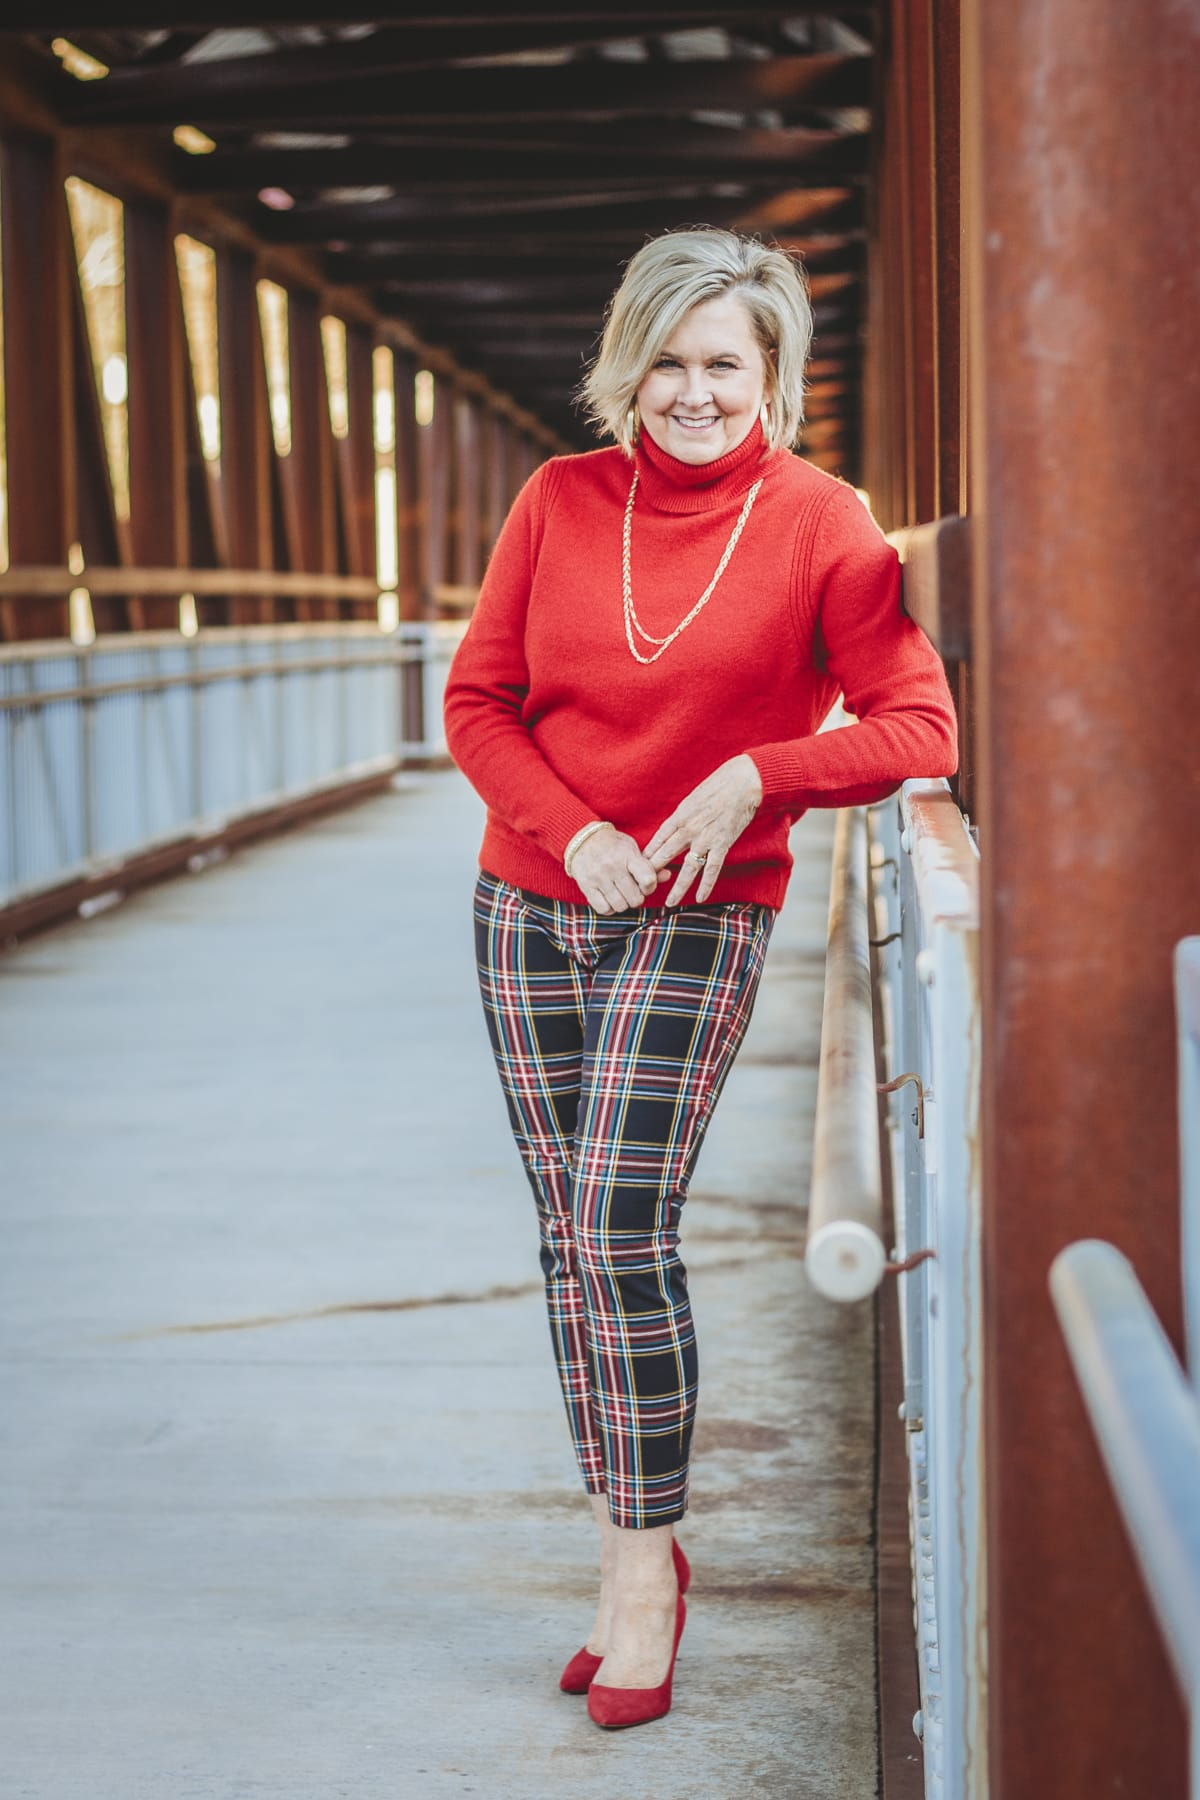 Fashion Blogger 50 Is Not Old is looking festive in this red turtleneck sweater and plaid pants